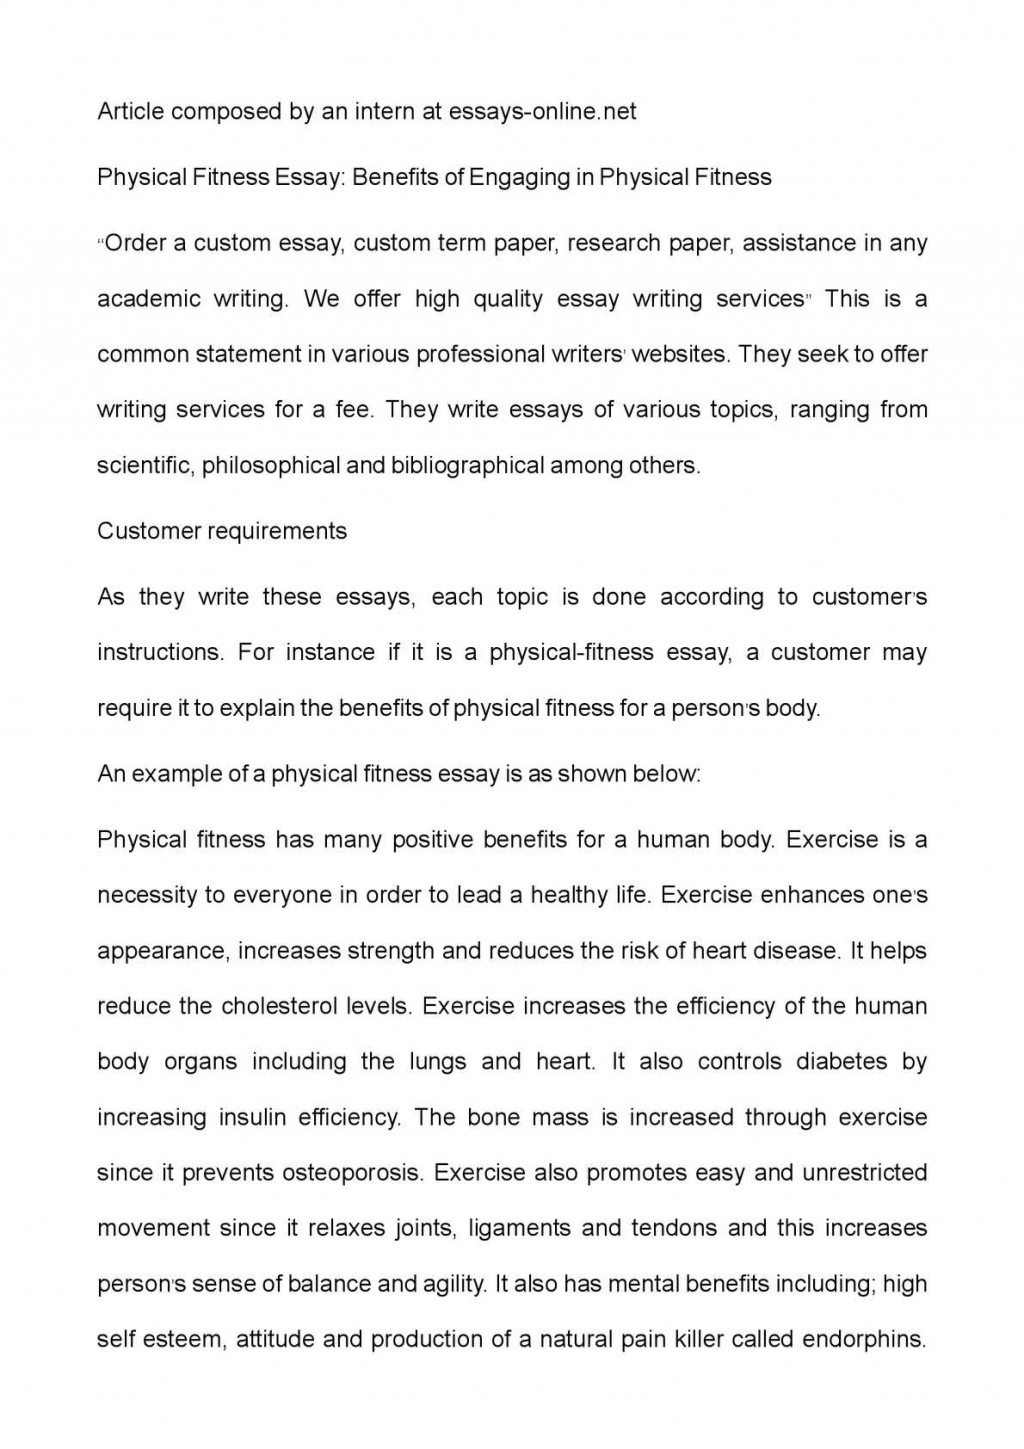 003 Benefits Of Exercise Essay Example Unusual Pdf Short On In Hindi Conclusion Large